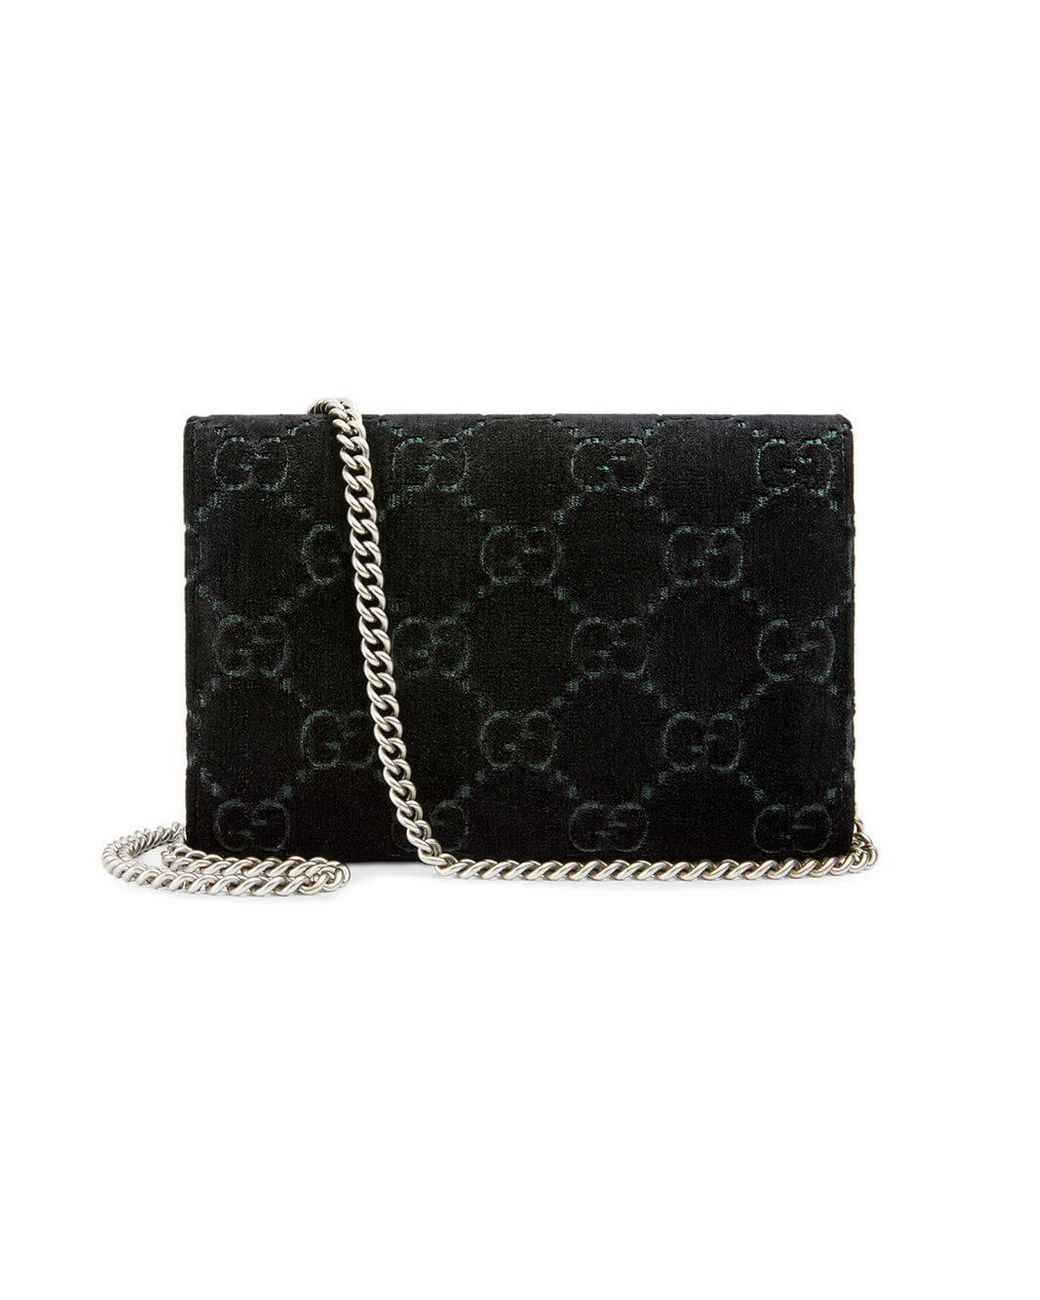 8a978afe9f40 Gucci Dionysus GG Velvet Mini Chain Wallet in Black - Lyst